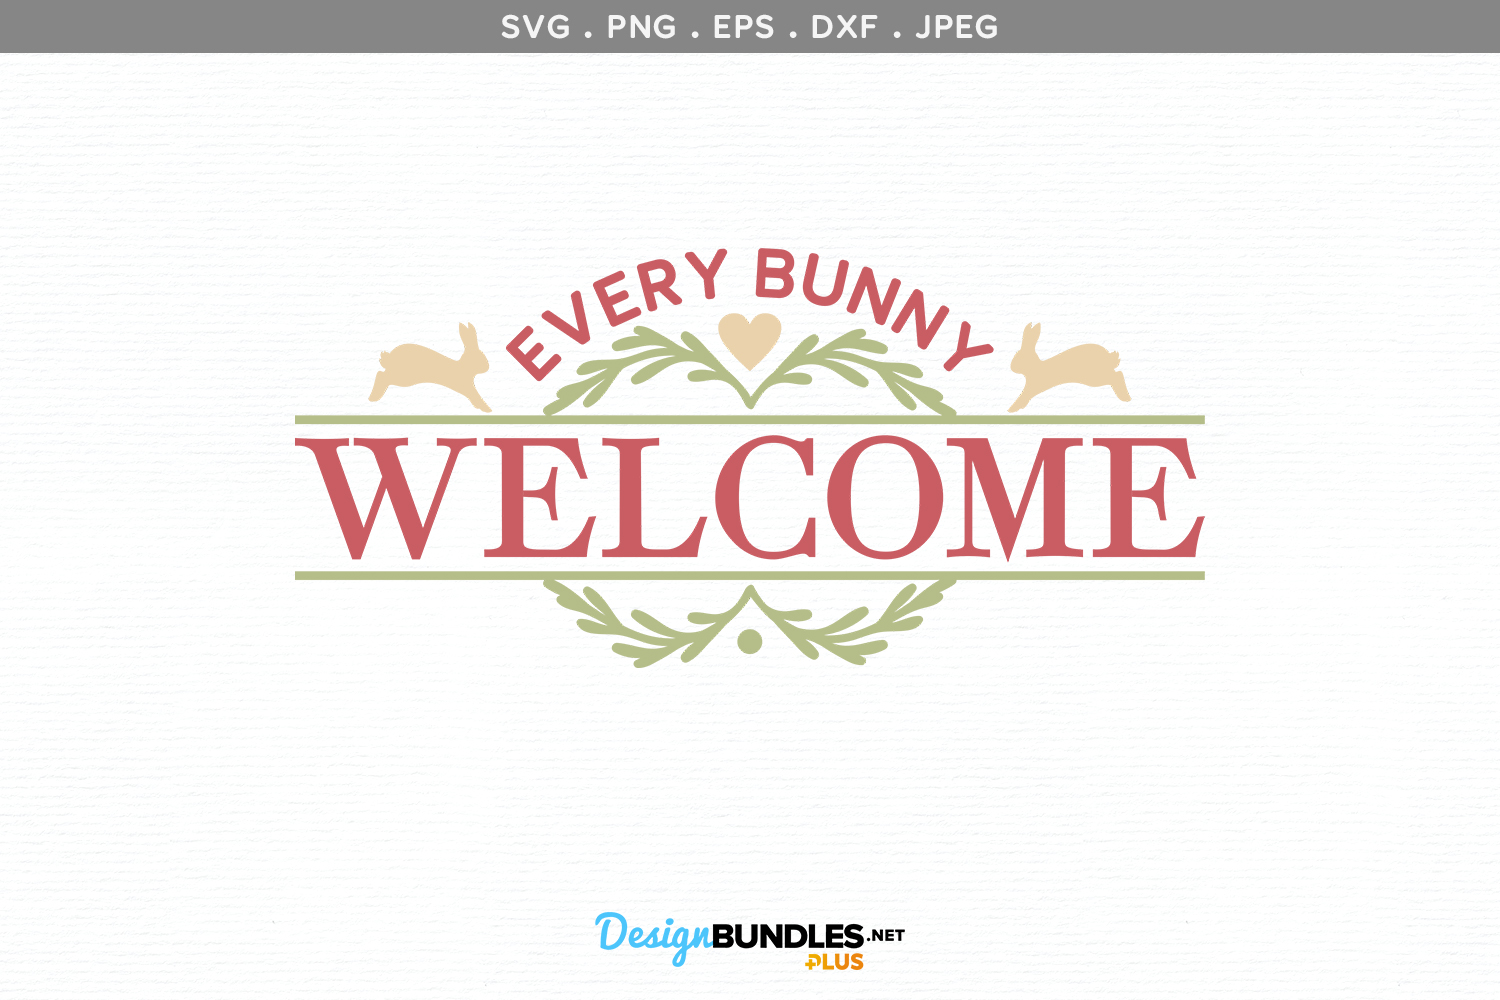 Every Bunny Welcome Sign - svg cut file example image 2